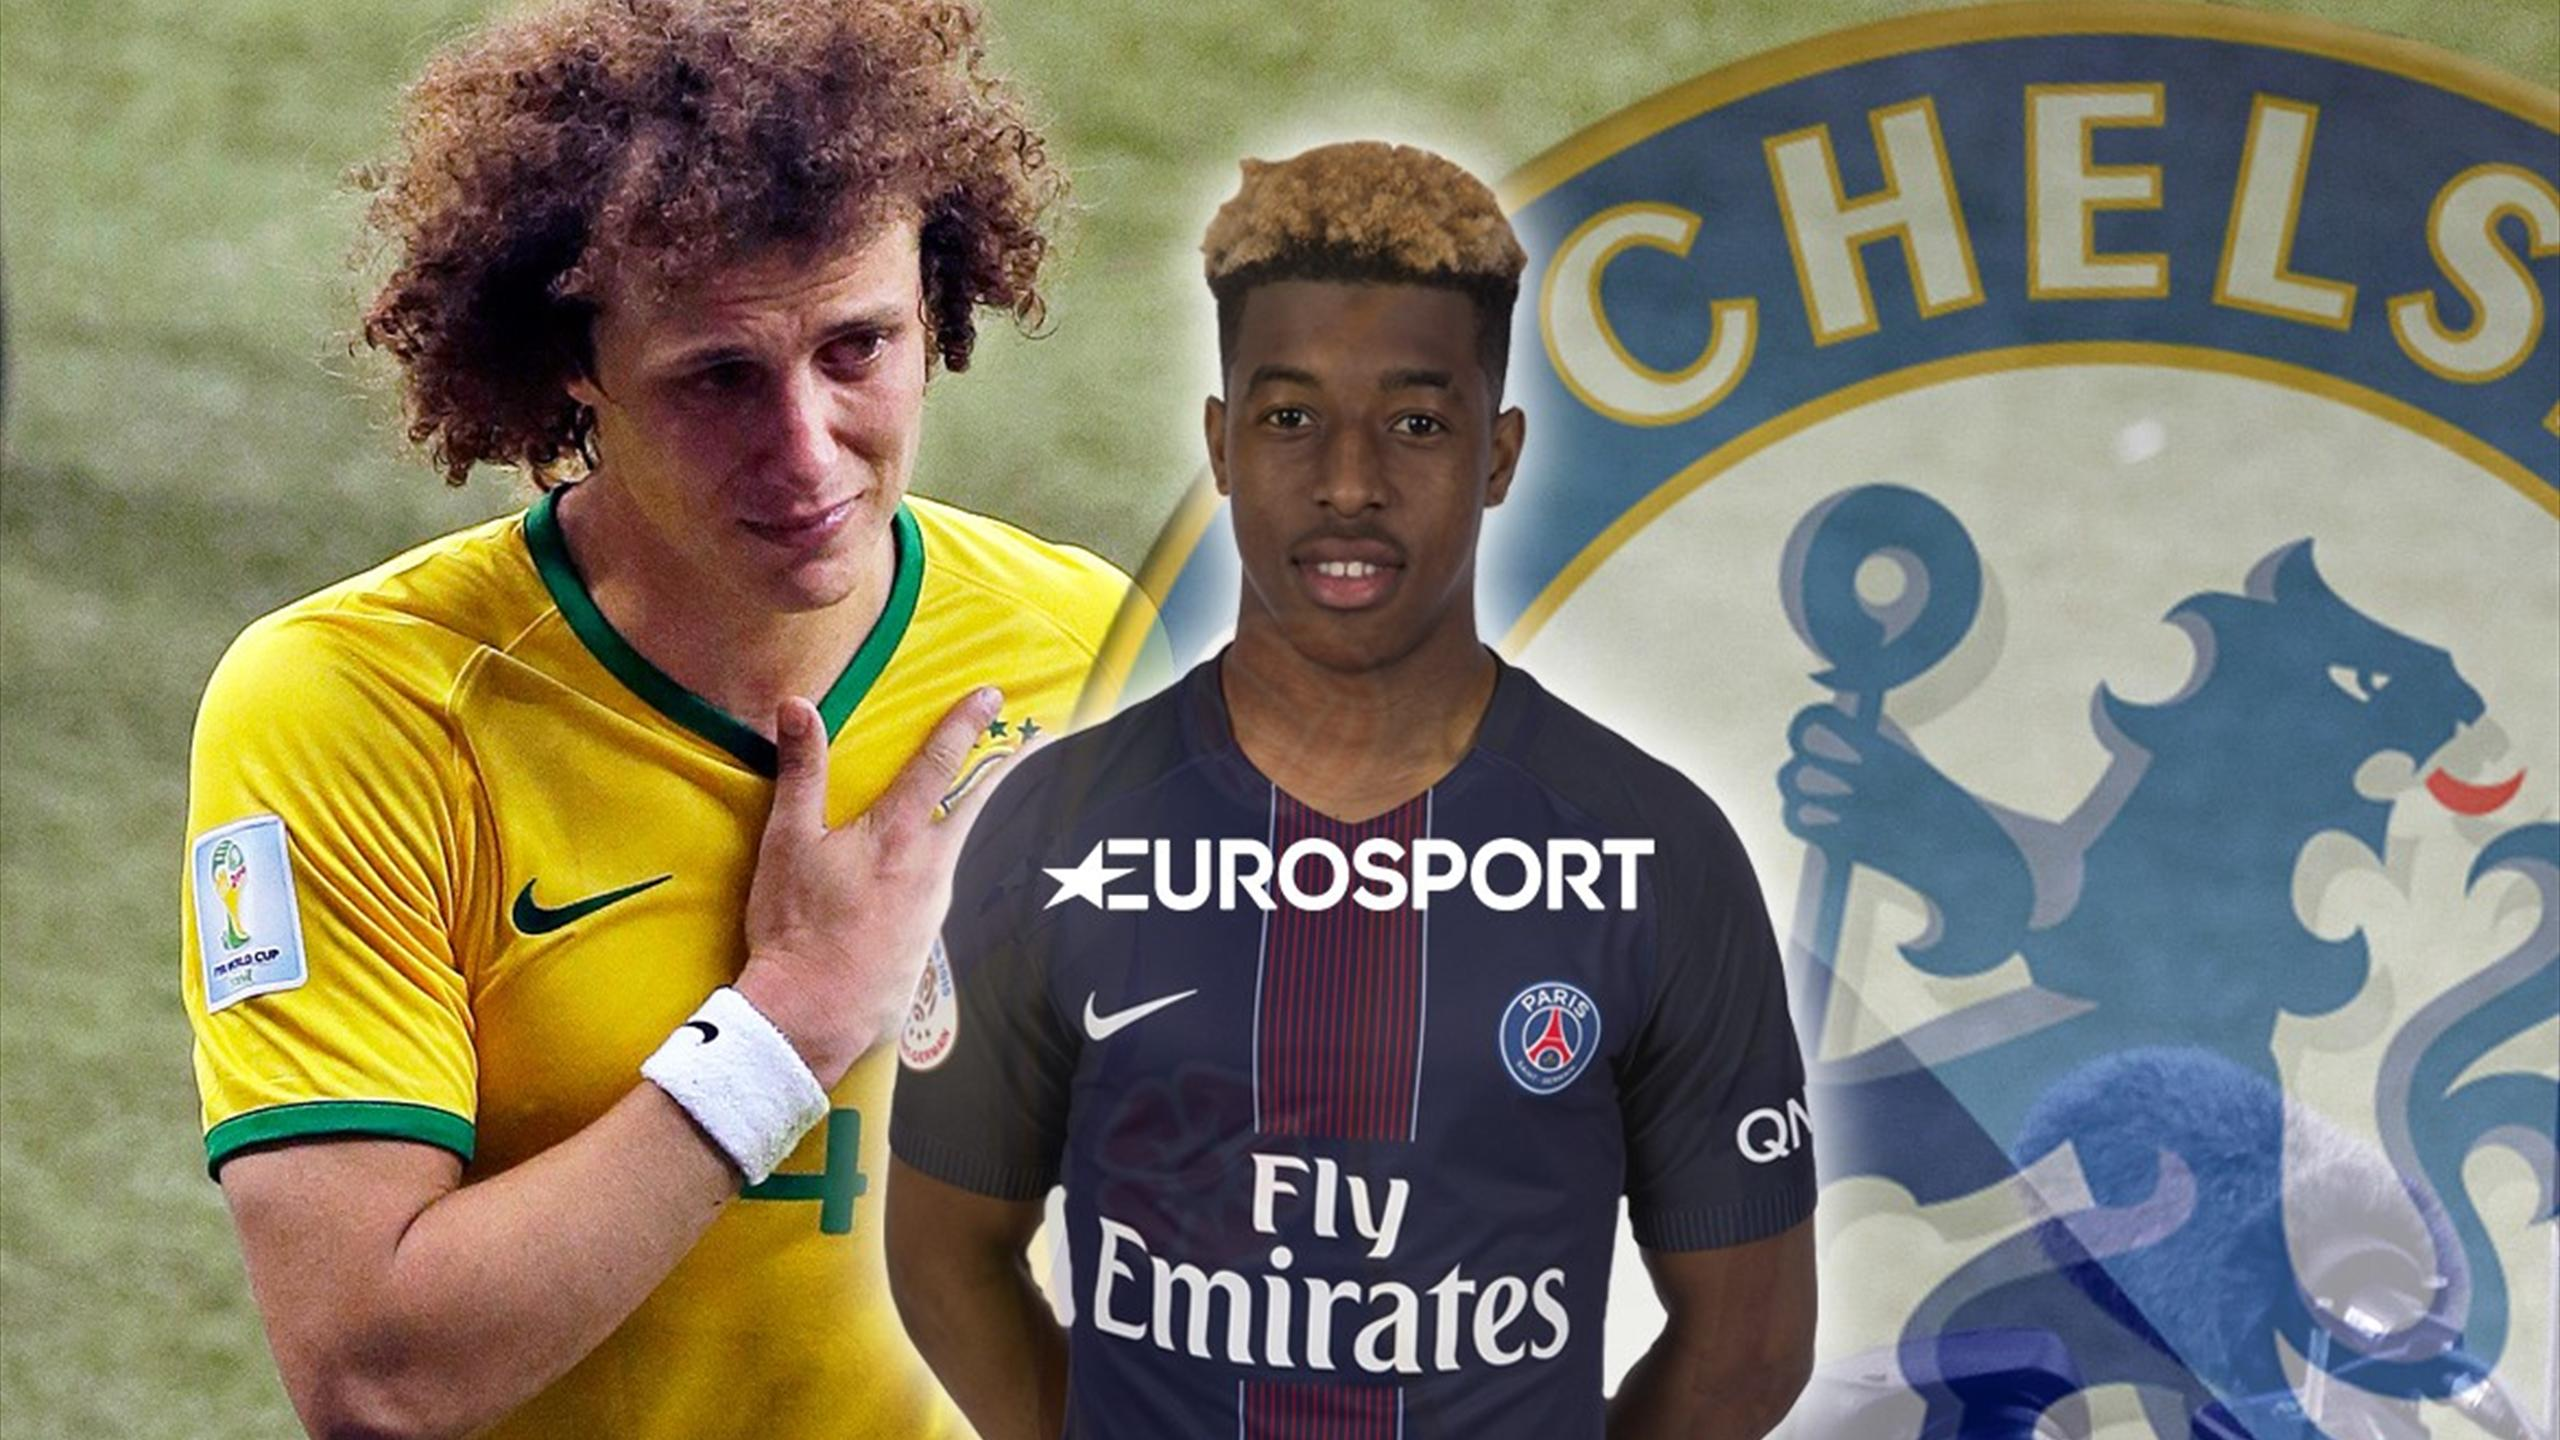 £34m David Luiz was Chelsea's second choice PSG defender - Euro Papers